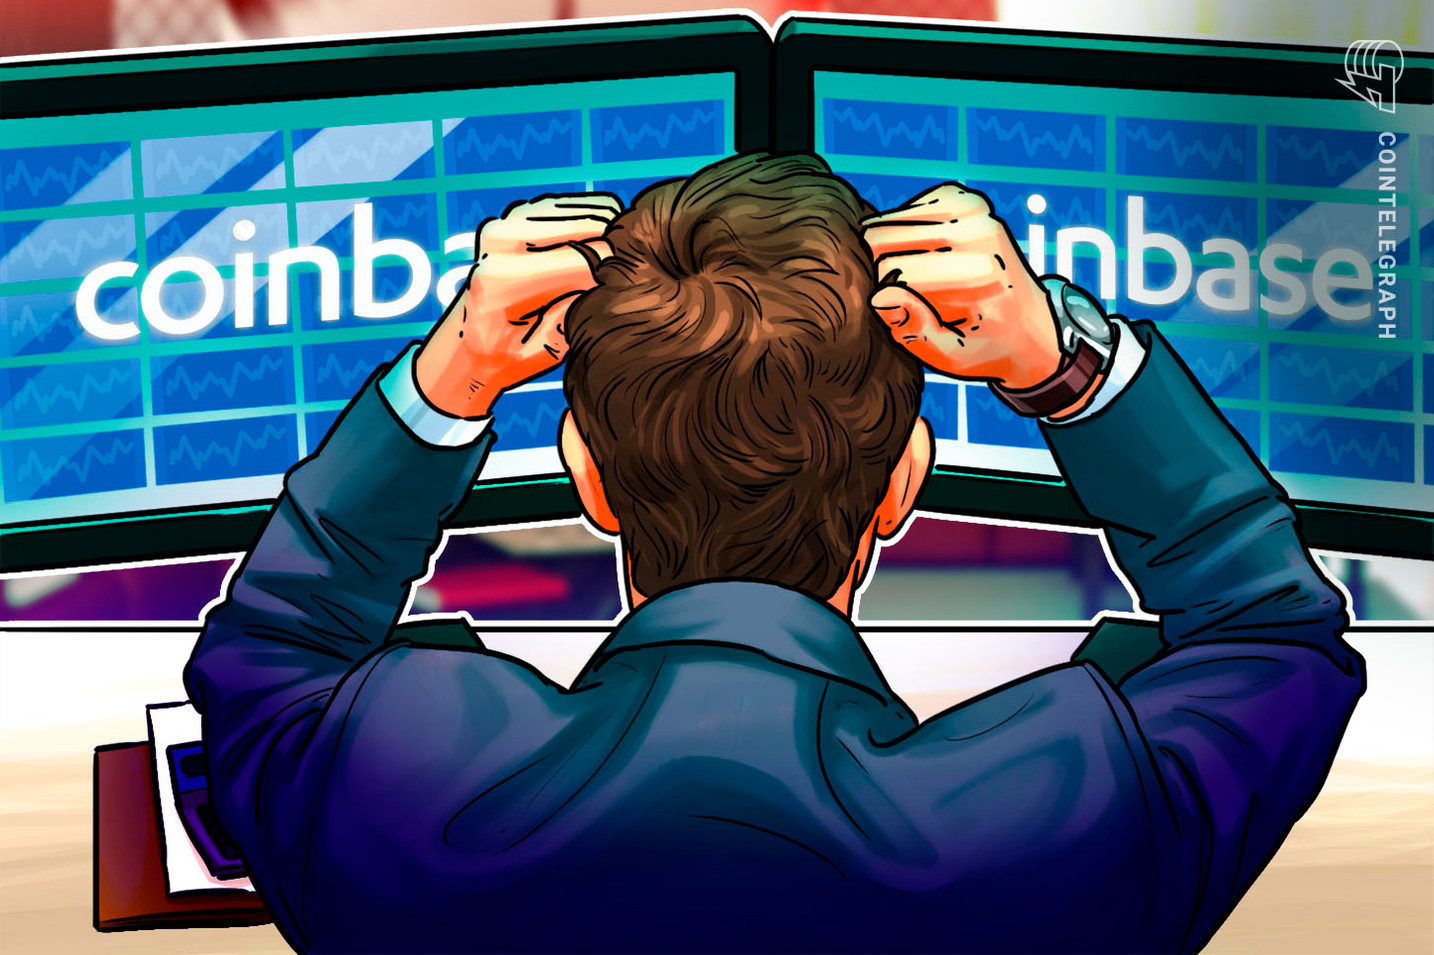 Coinbase Exchange Inaccessible Due to 5x Traffic Spike During Bitcoin Surge